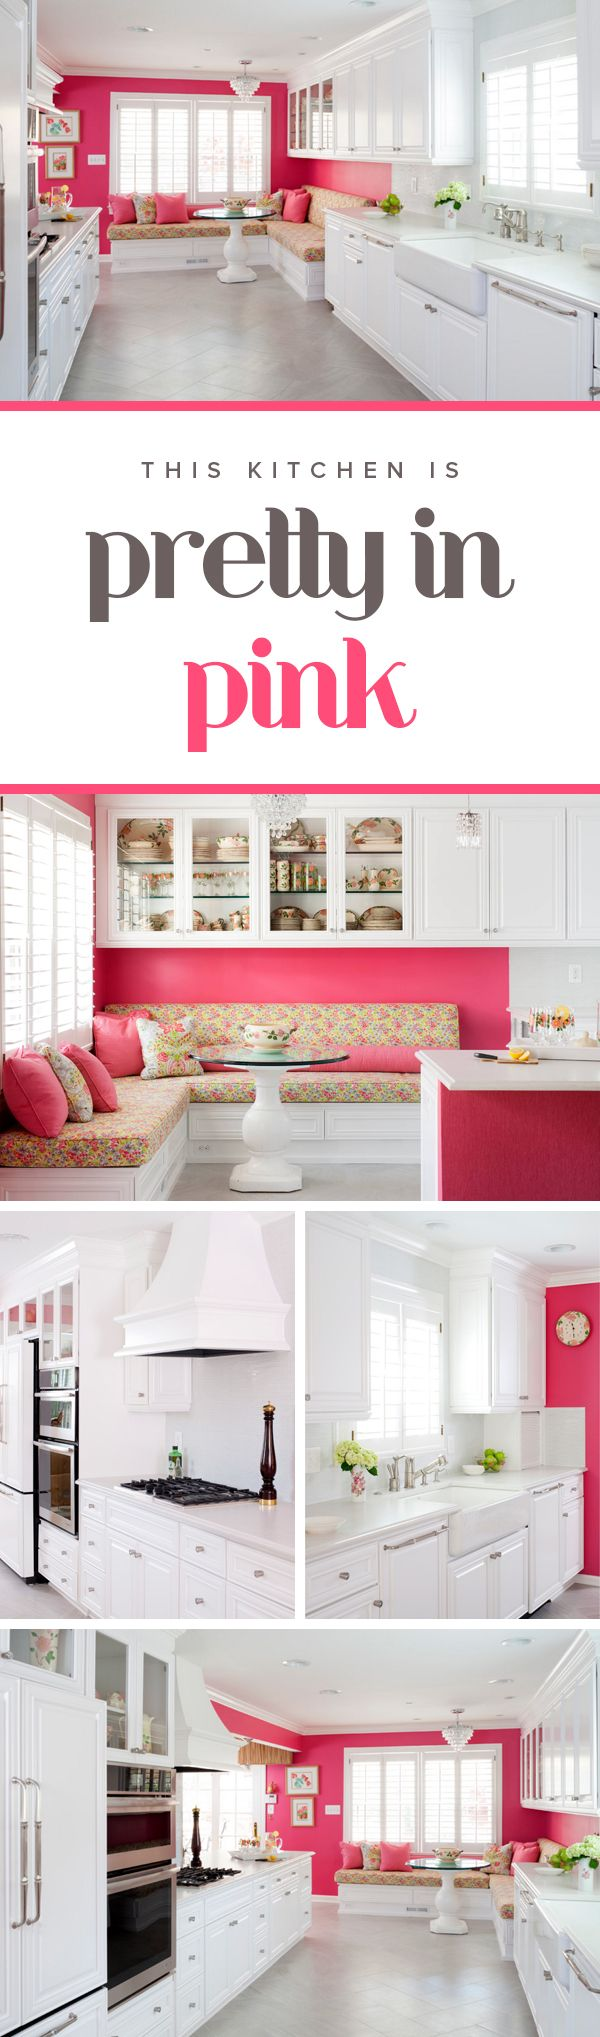 These kitchen pops with its bright pink walls. The white cabinets and appliances gives this kitchen a modern yet playful look.